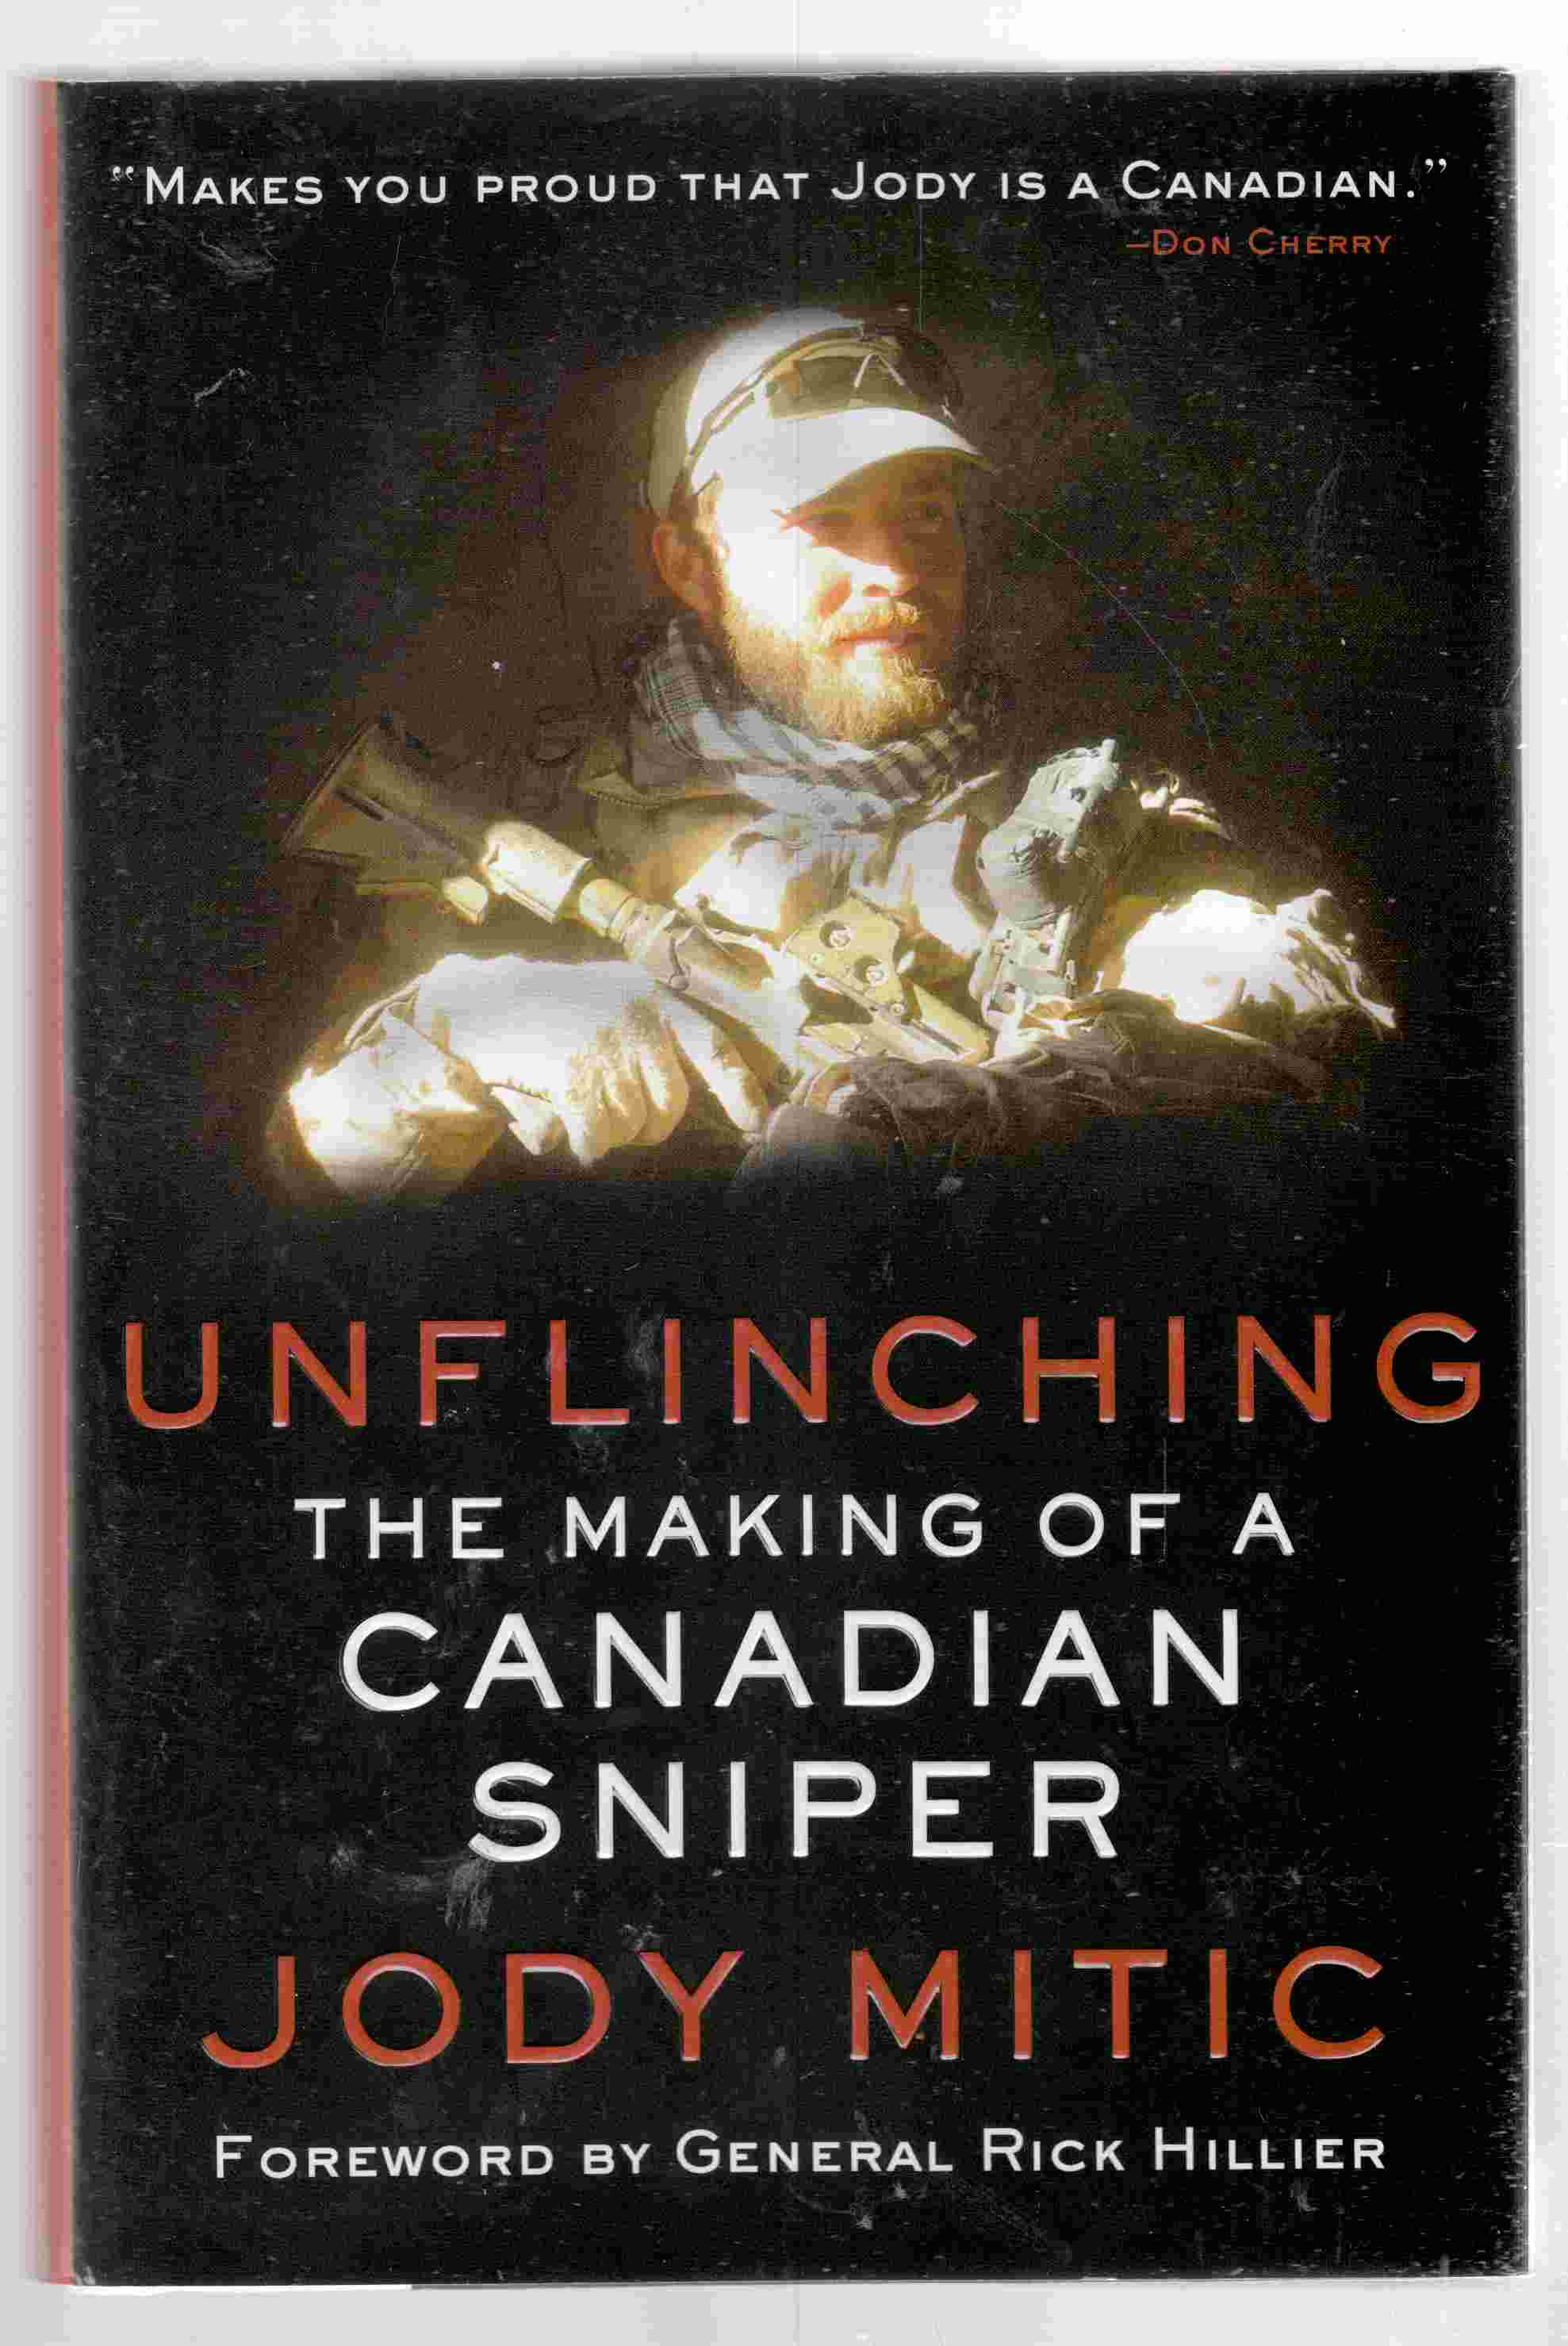 Image for Unflinching The Making of a Canadian Sniper